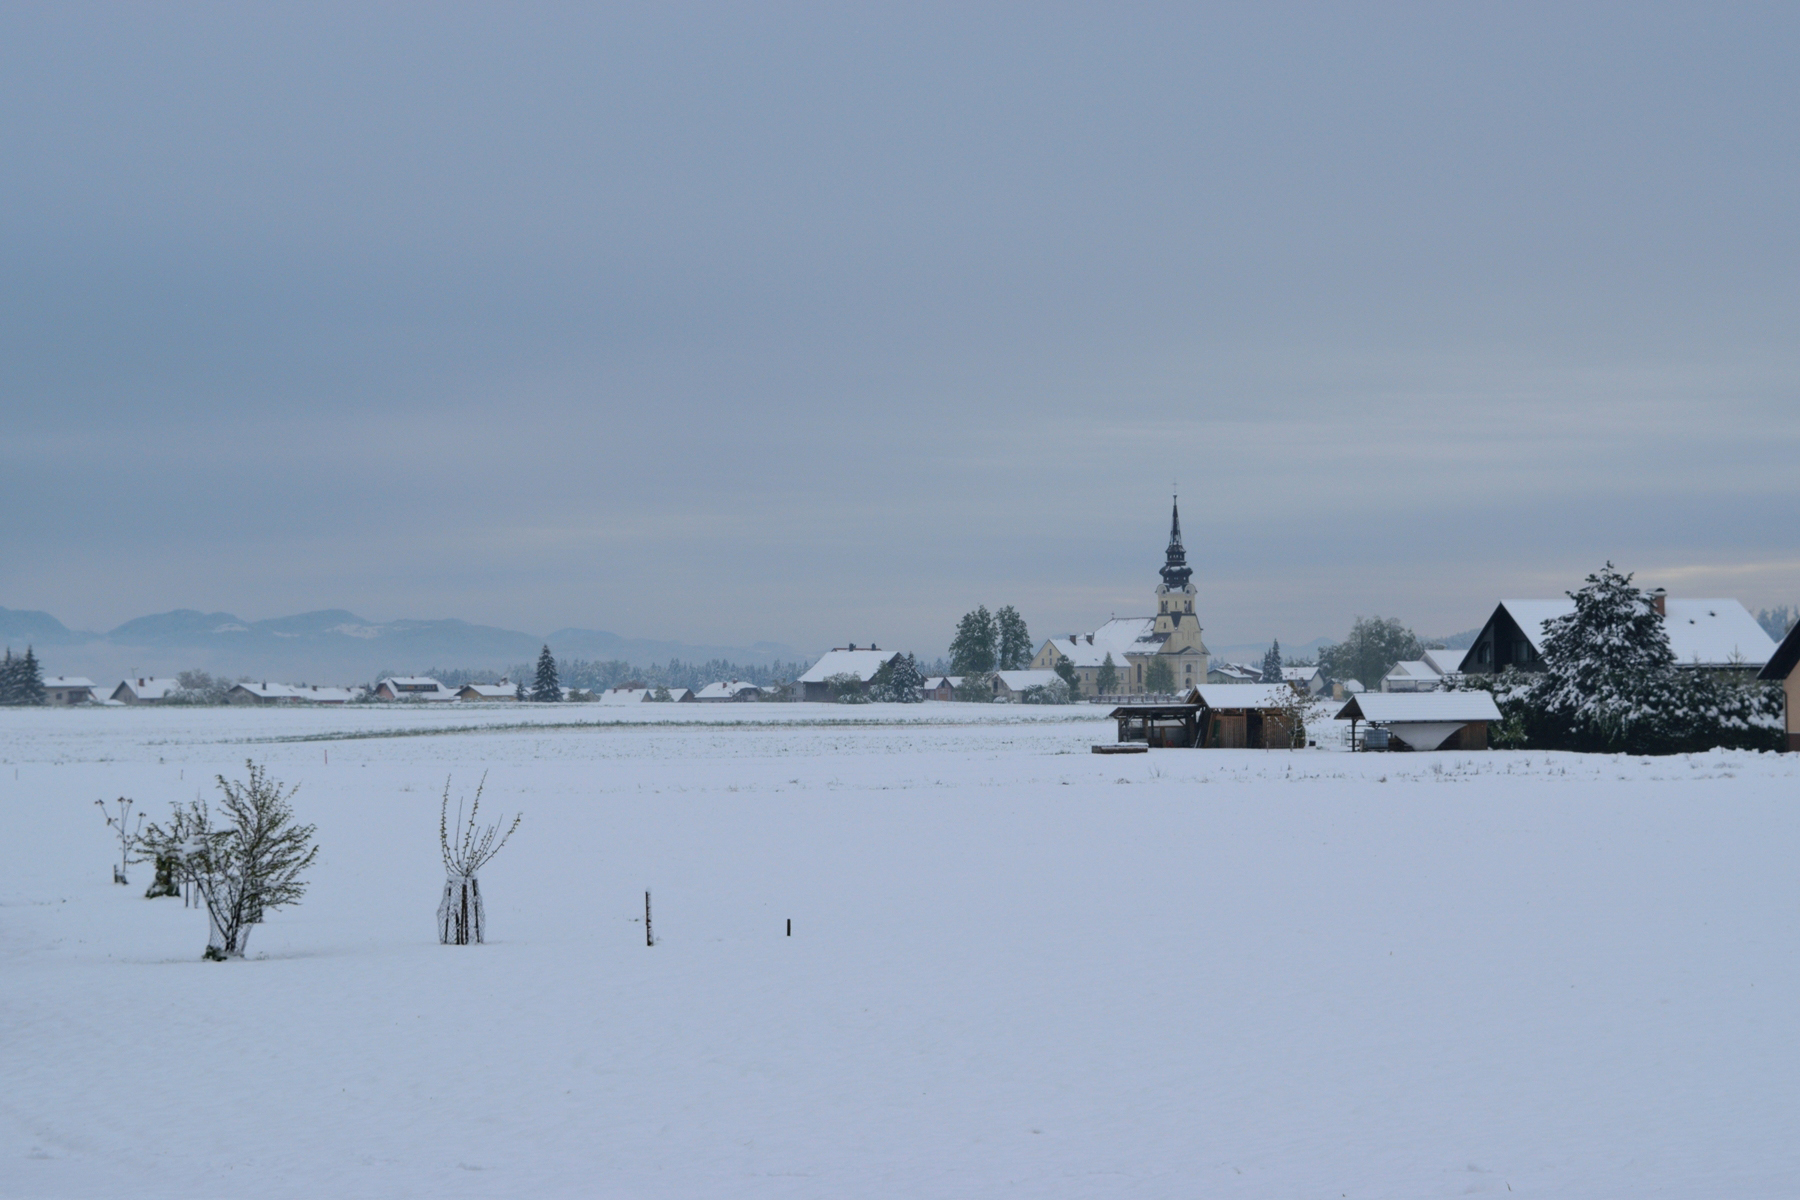 Snowy postcards from Slovenia   The Cheerful Wanderer